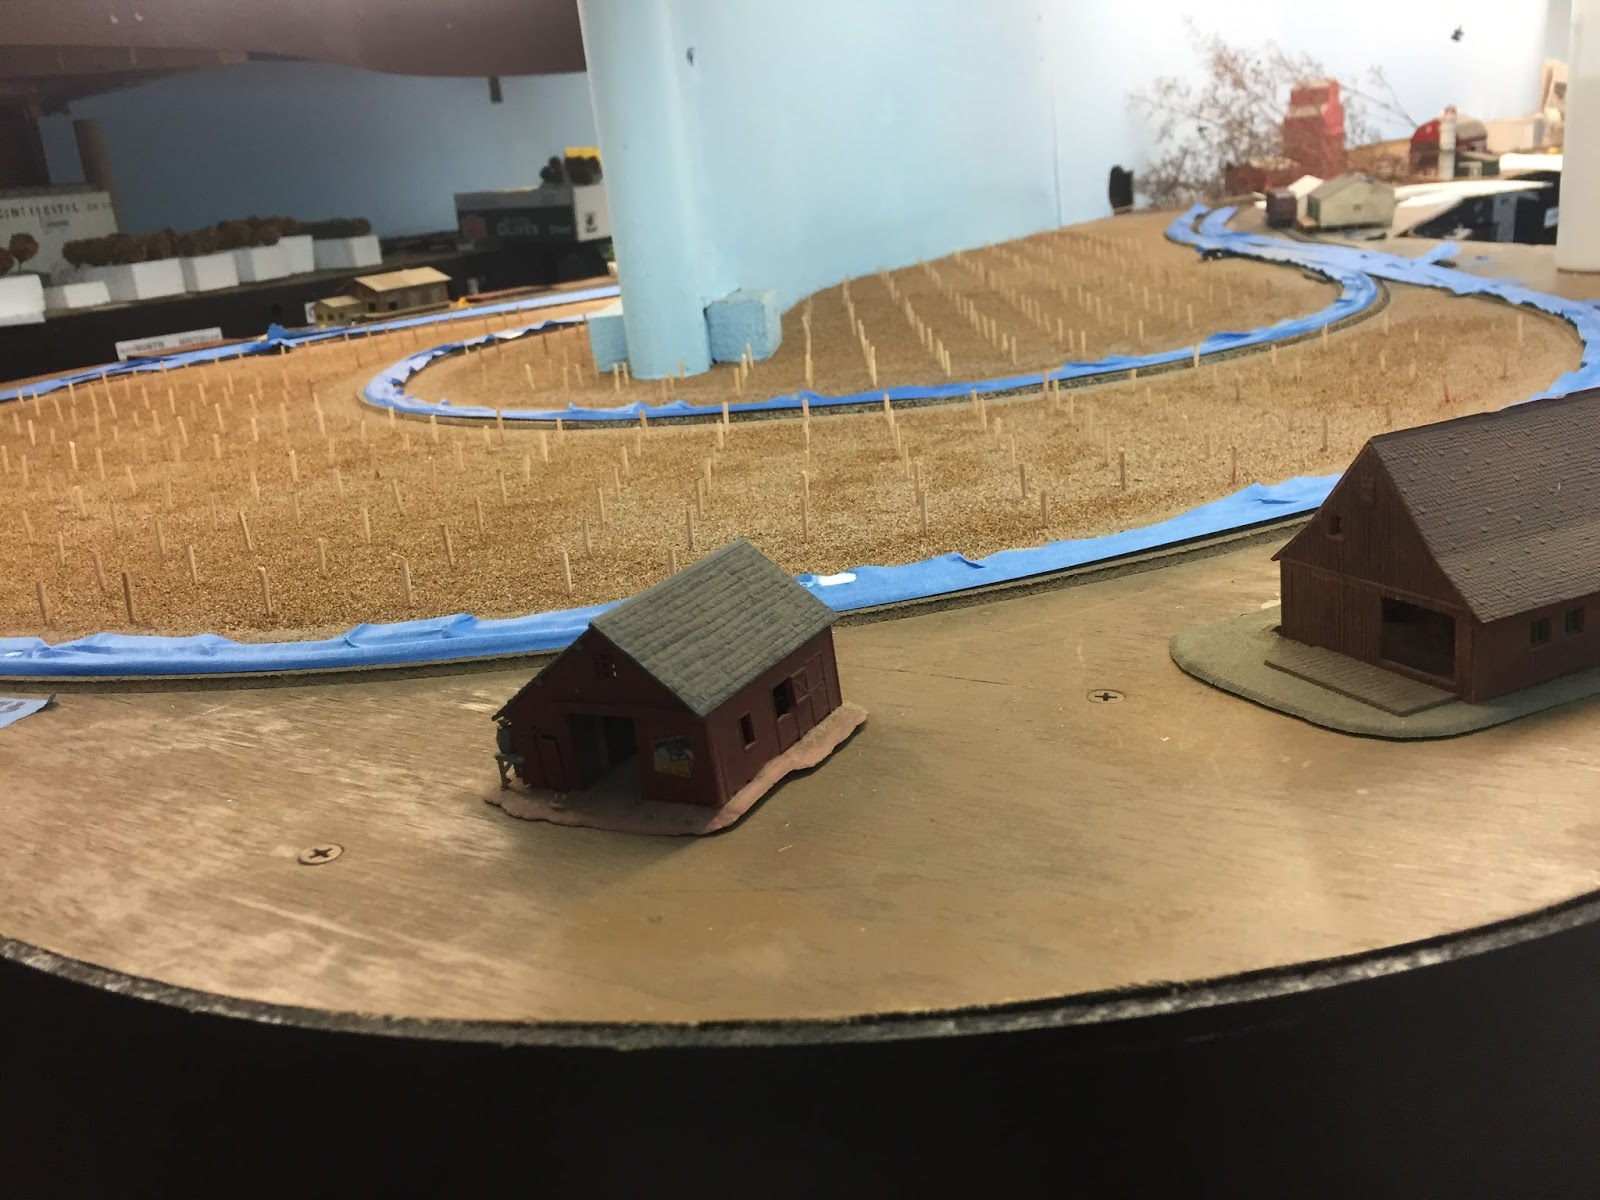 Central Pacific Railway Cprxa Model Railroad Well Dcc Wiring Ho Train Layouts On 3 Lamp T5 Ballast Diagram Spread And Glued Removed The Tooth Picks As I Planted Each Tree So Would Not Lose Hole Looooong Arduous Process